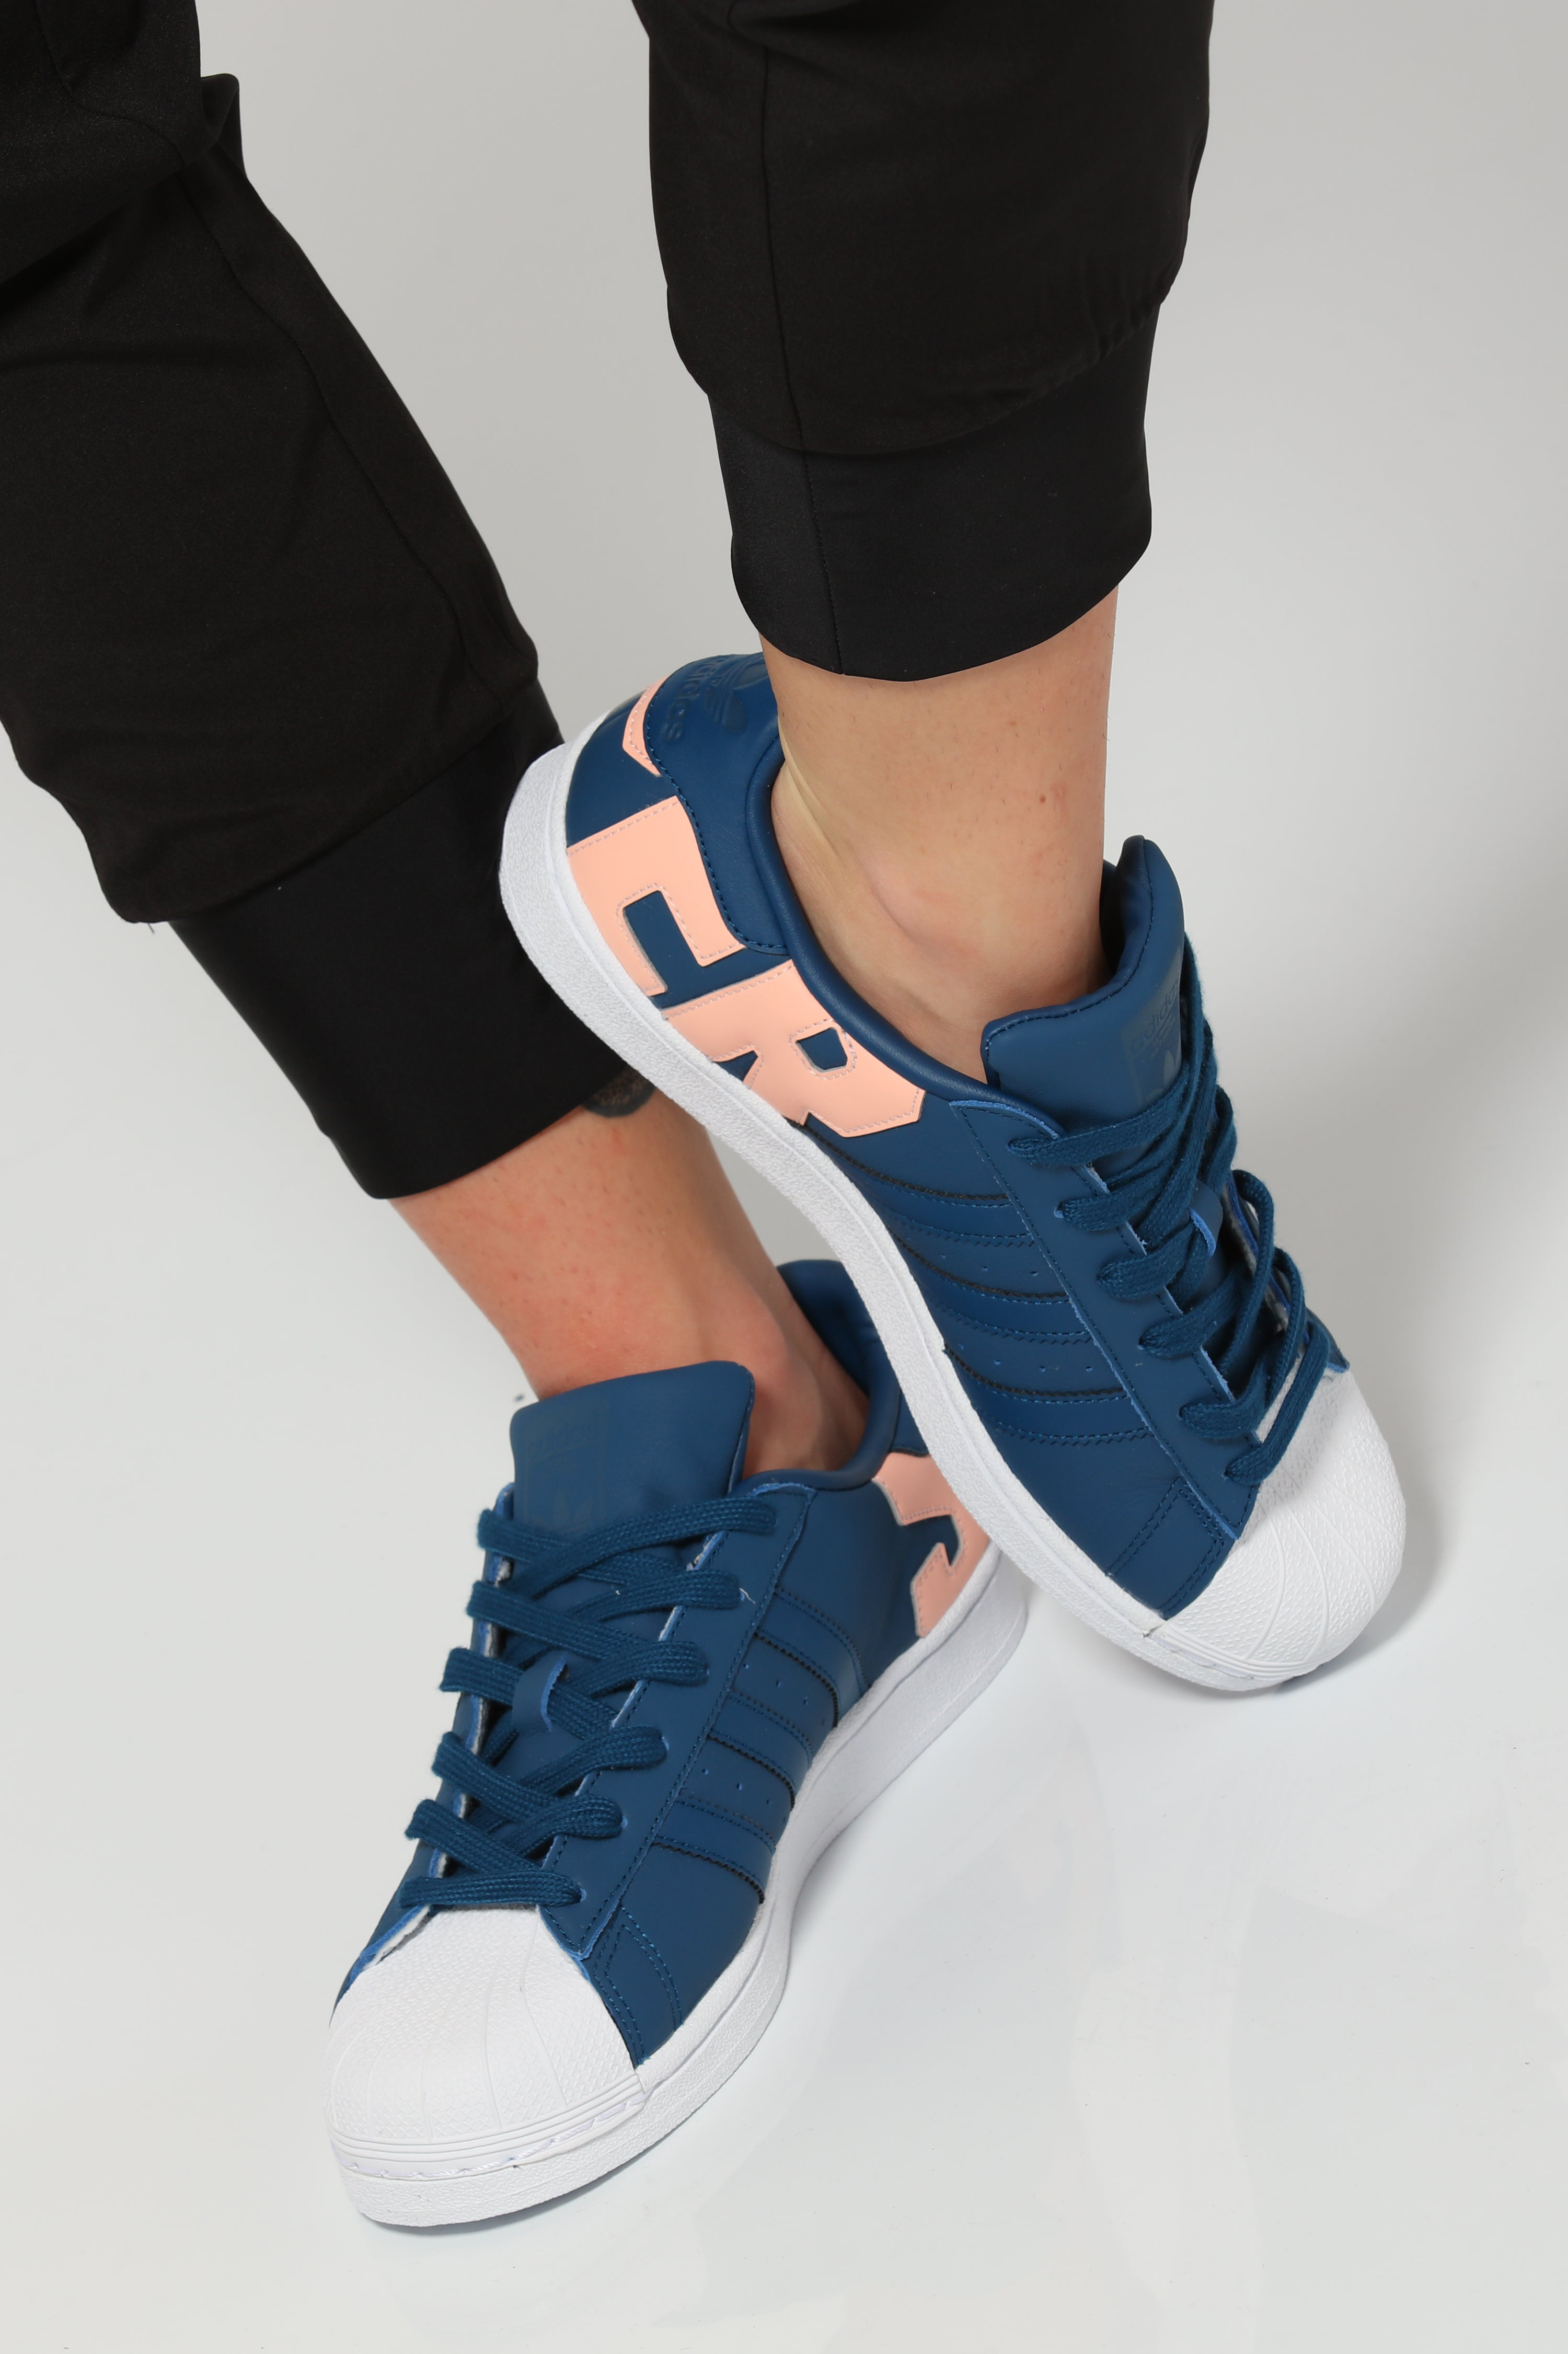 Fitted adidas Superstar Sneakers Womens WhiteNavy Blue